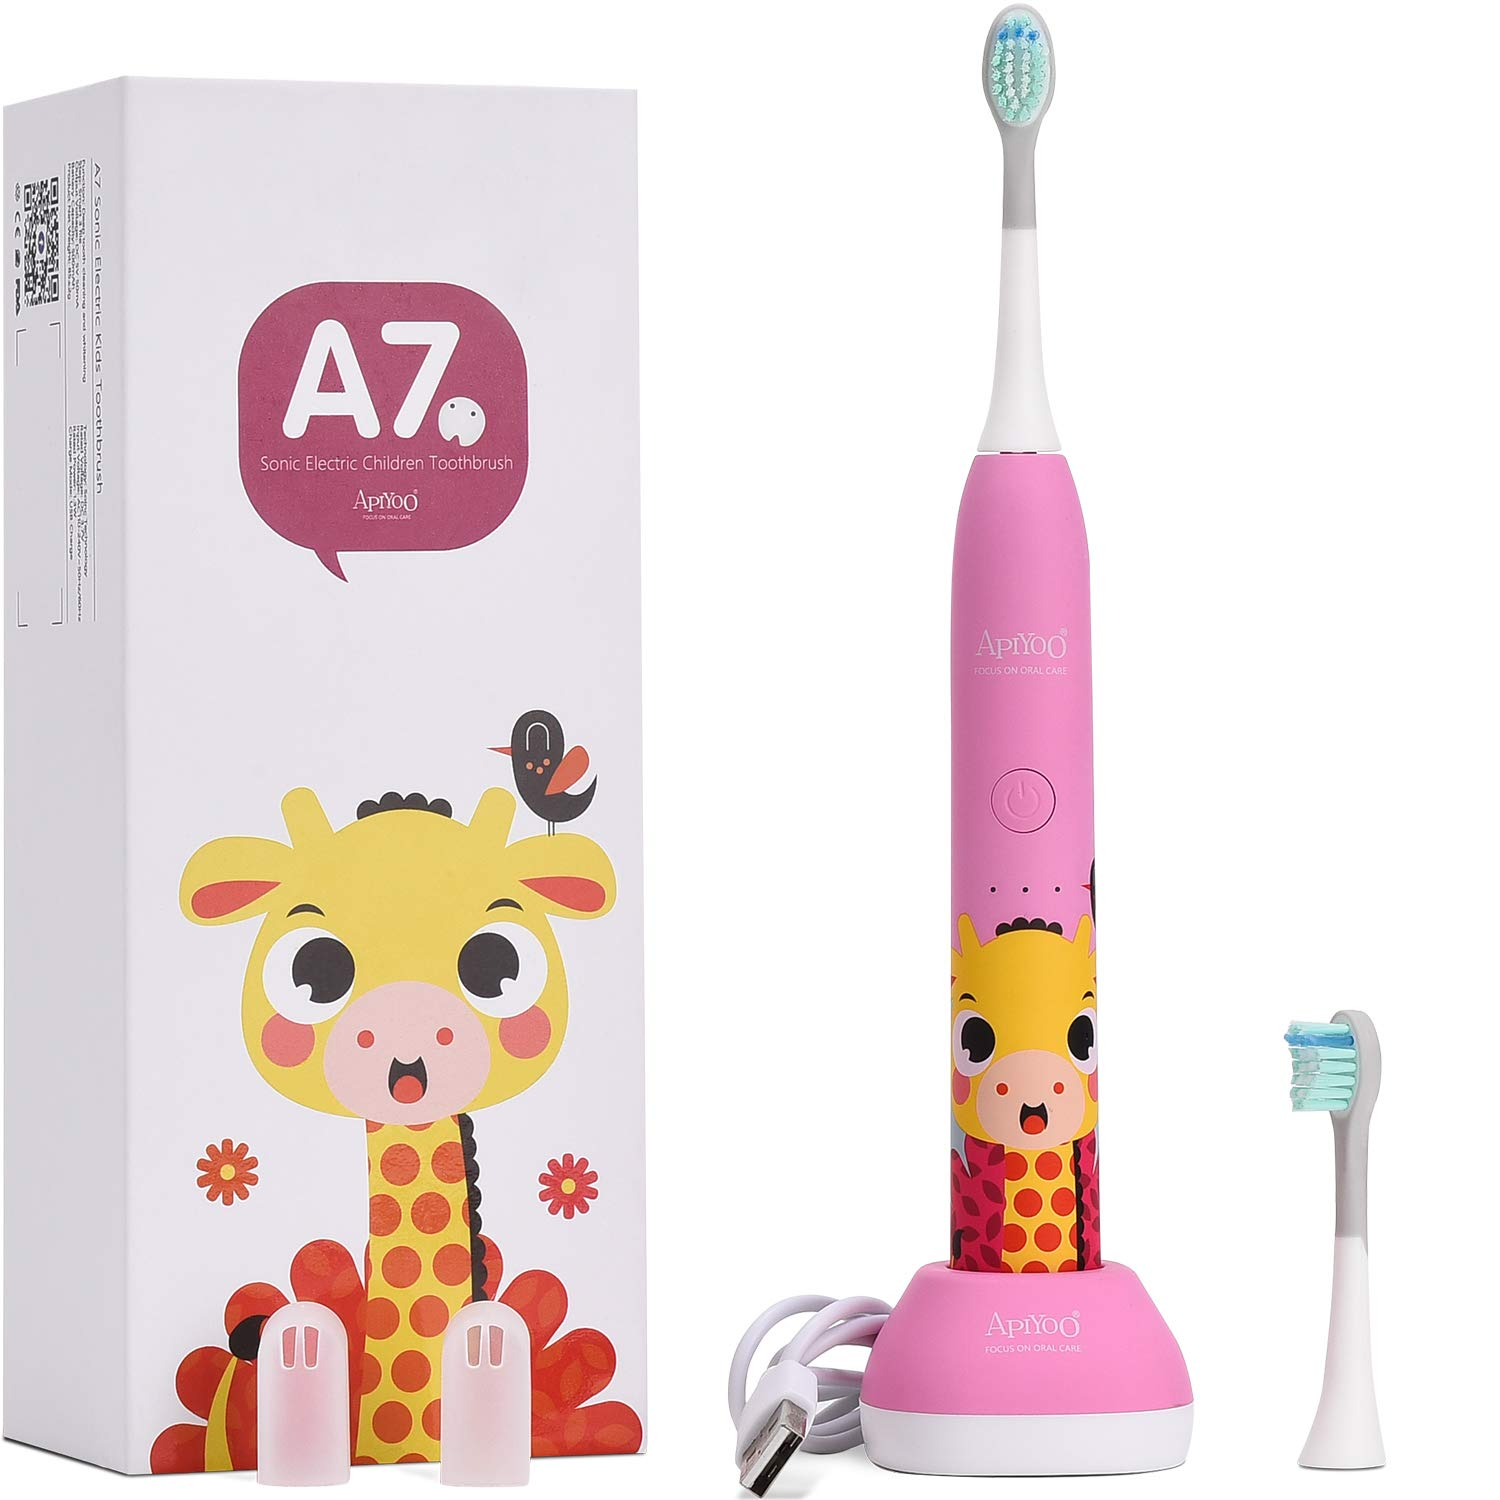 Apiyoo Kids Electric Toothbrush, A7 Sonic Wireless Rechargeable Toothbrush, IPX7 Waterproof with 3 Brushing Modes, 2 Min Smart Timer for Kids. (Pink)